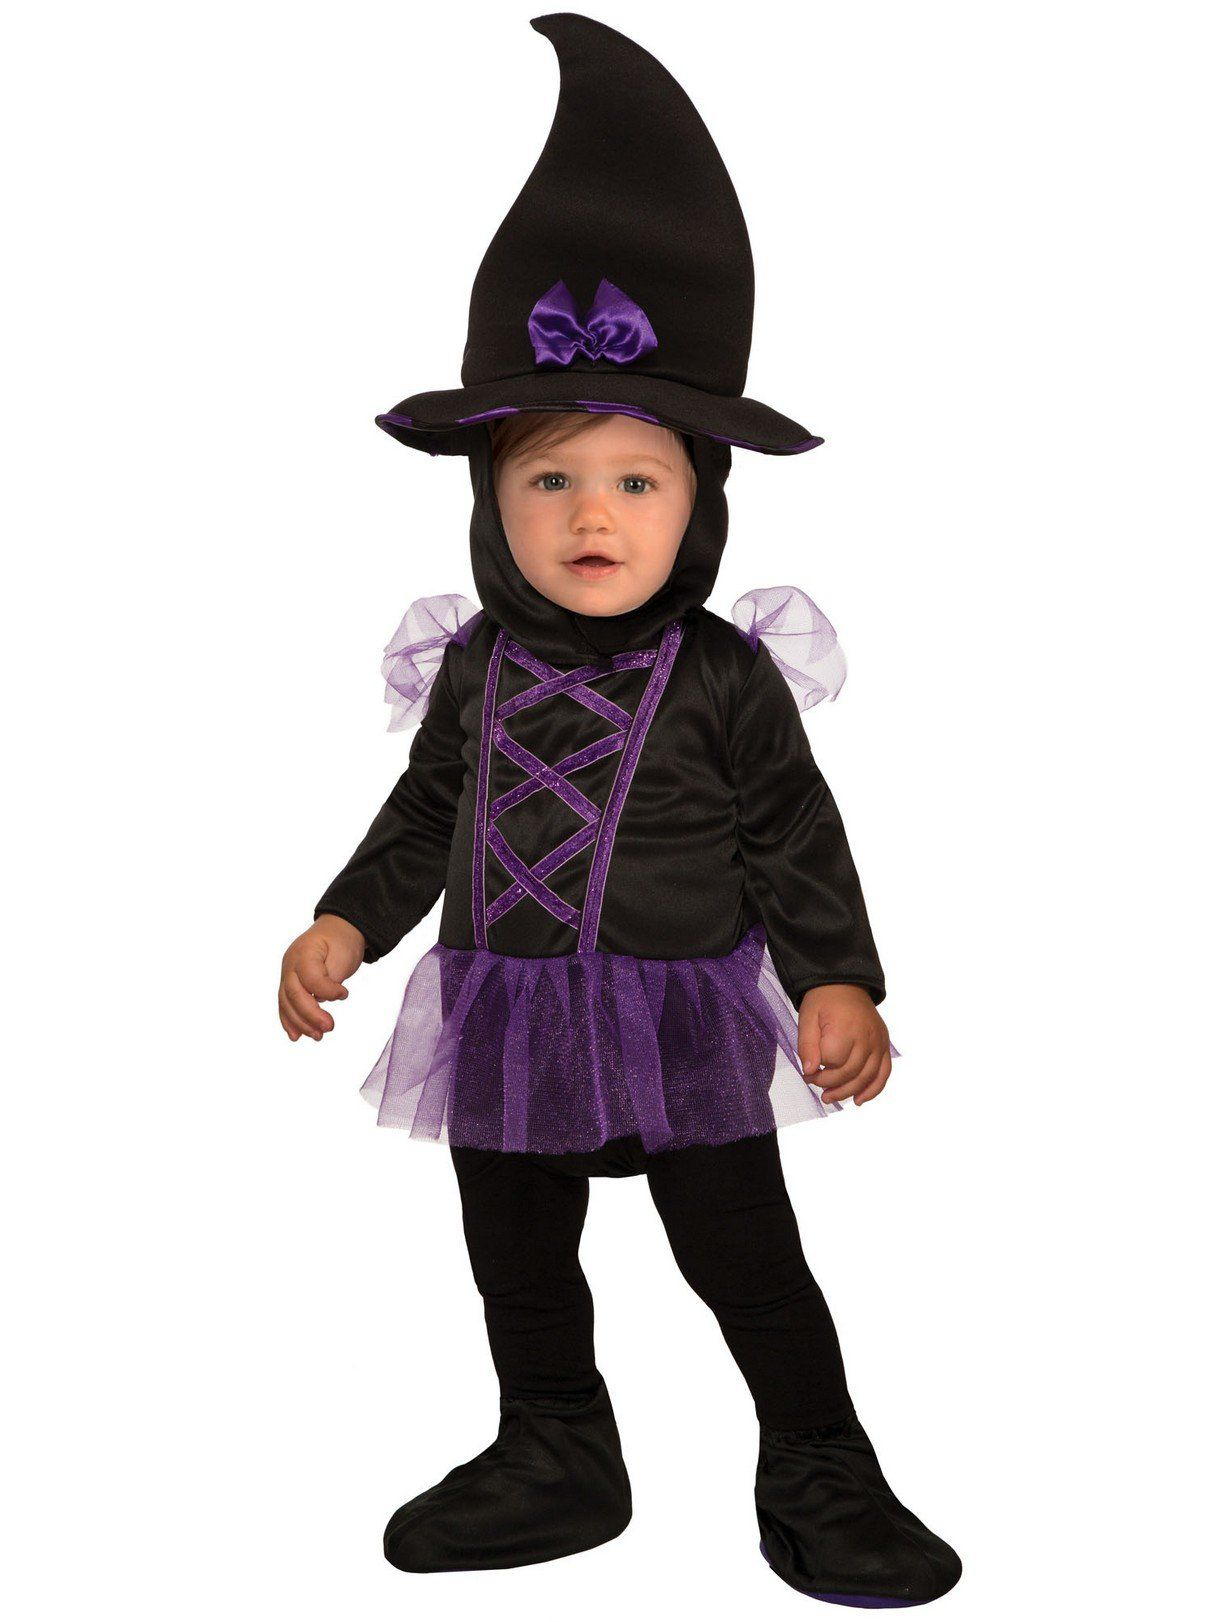 Kiddie Witch Costume For Infants Baby Toddler Costumes For 2019 Wholesale Halloween Costumes